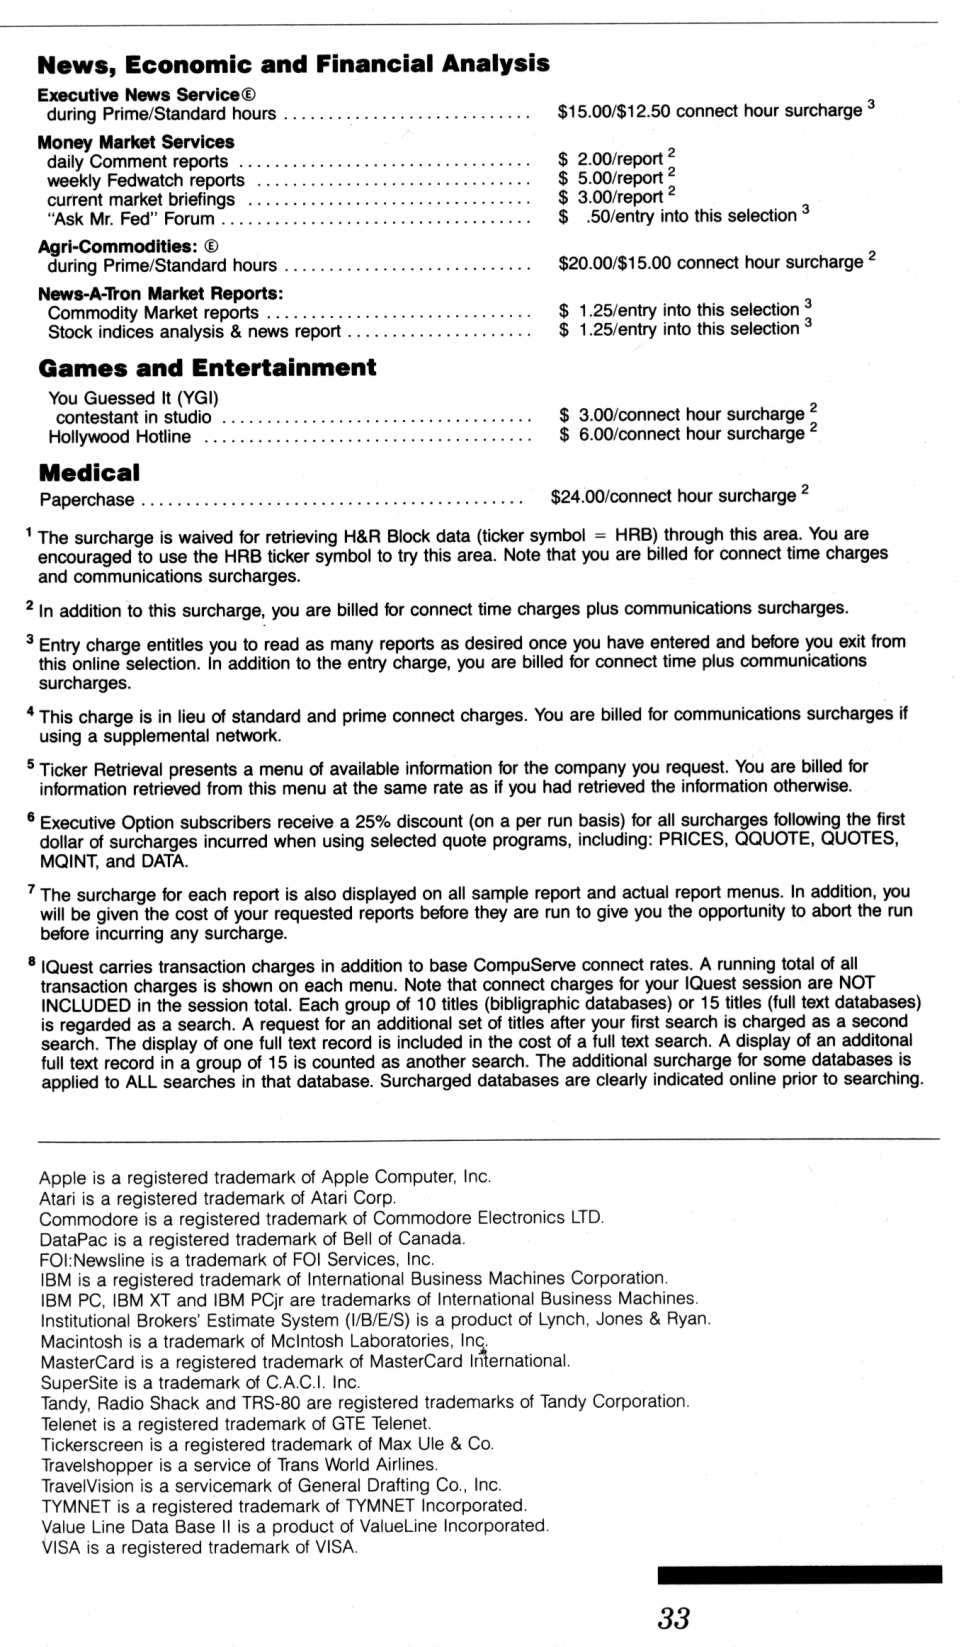 [CompuServe IntroPak page 33/44  Transaction/Premium Program Rates (3/3)]